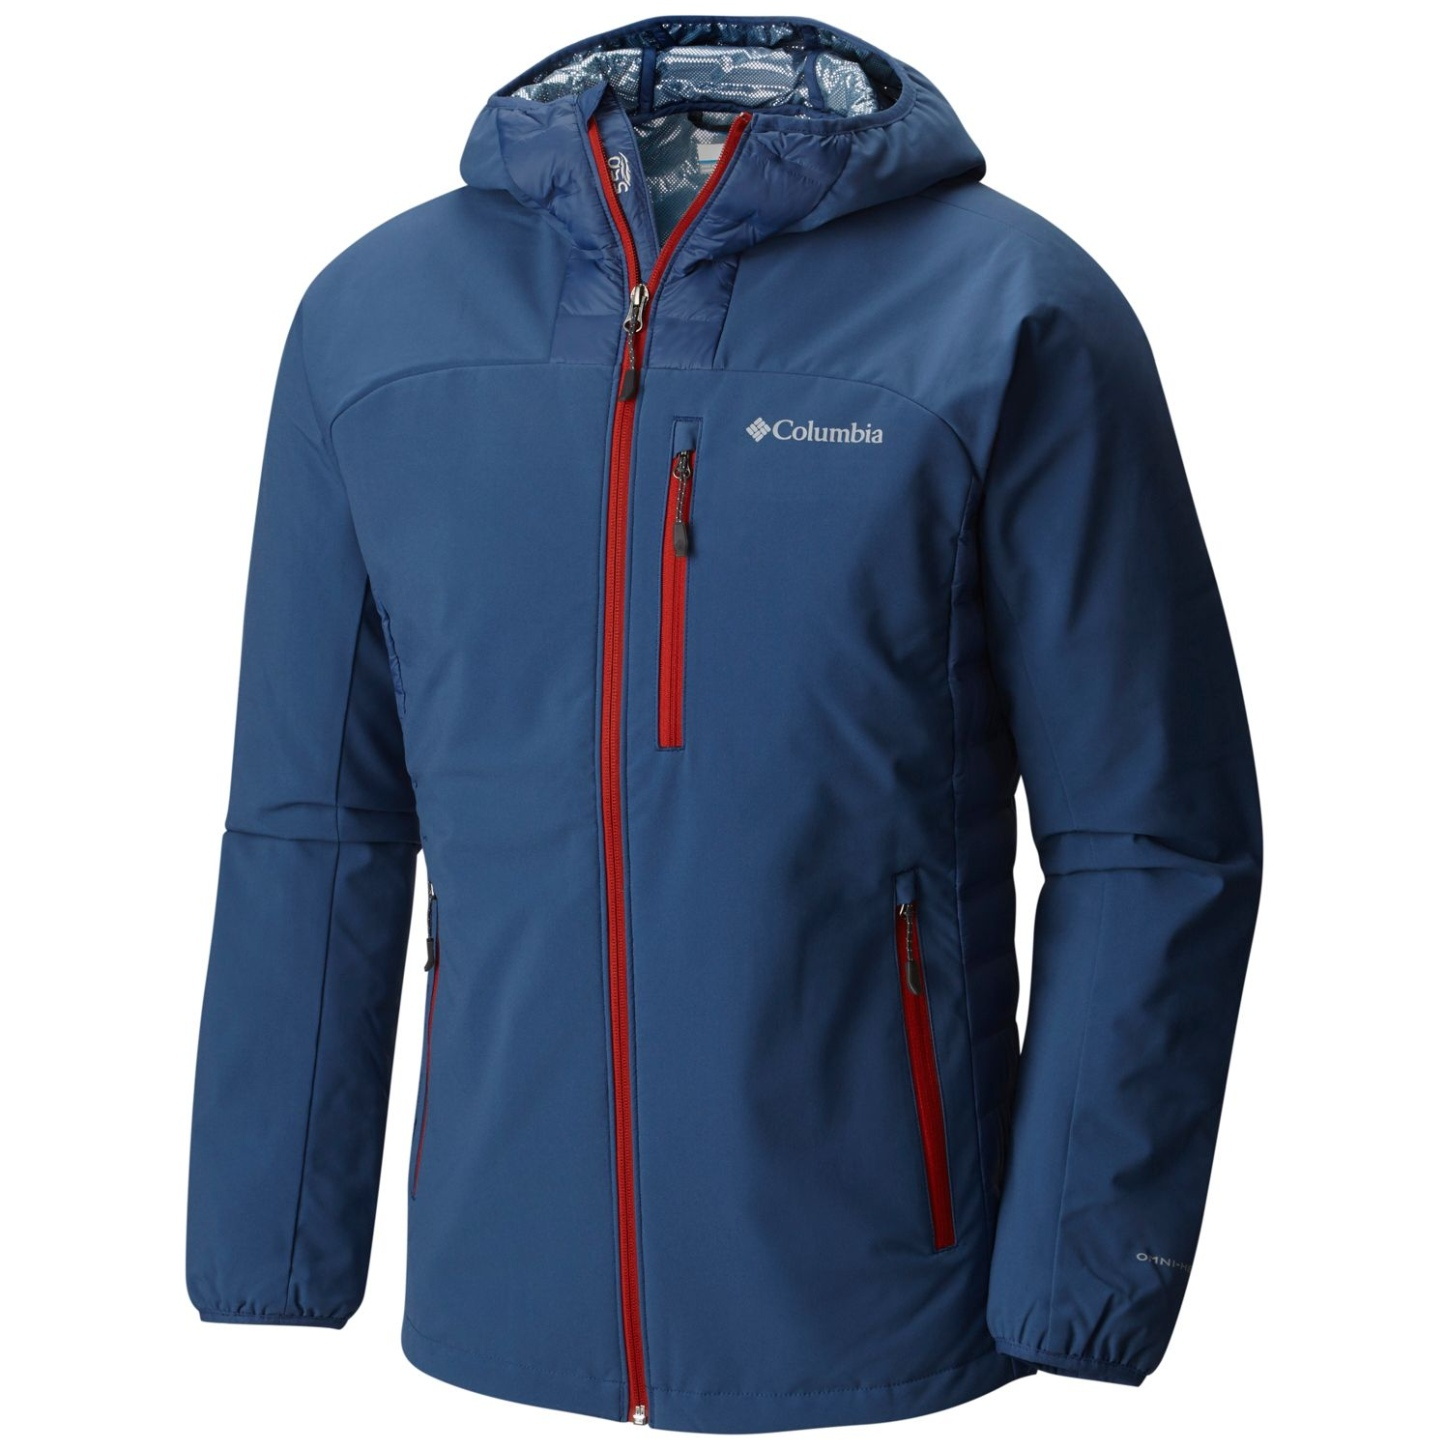 Columbia Hybrid-Jacke Dutch Hollow für Männer Night Tide, Steel-30